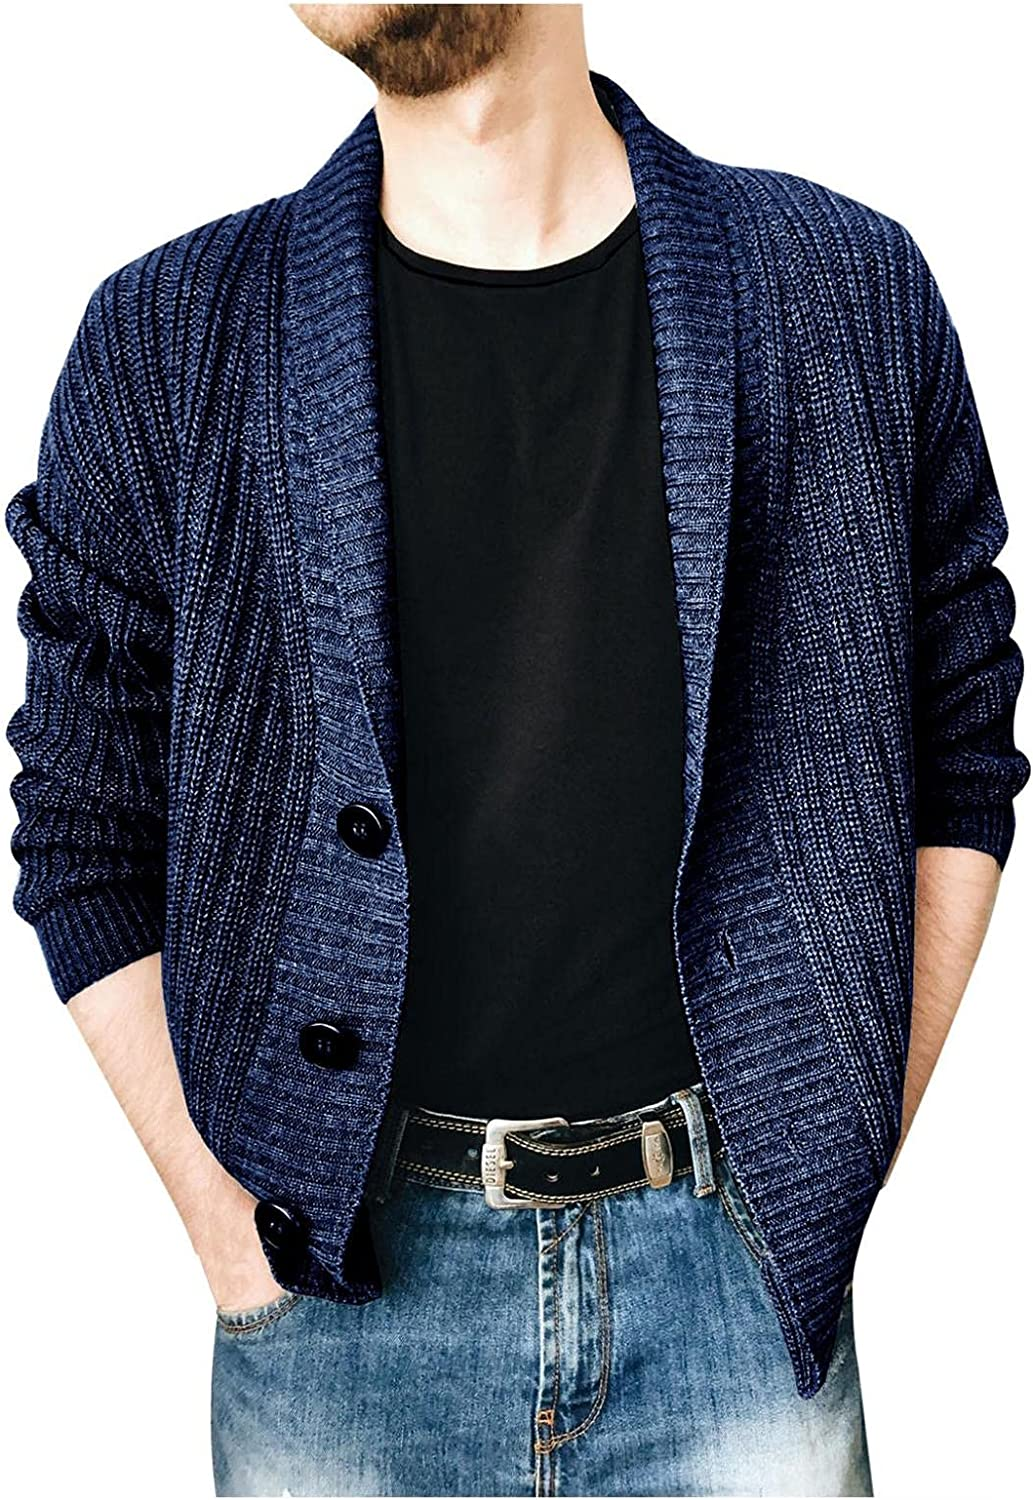 Mens Cardigan Sweater Casual Slim Fit V-Neck Cable Knitted Sweaters with Front Button Outwear